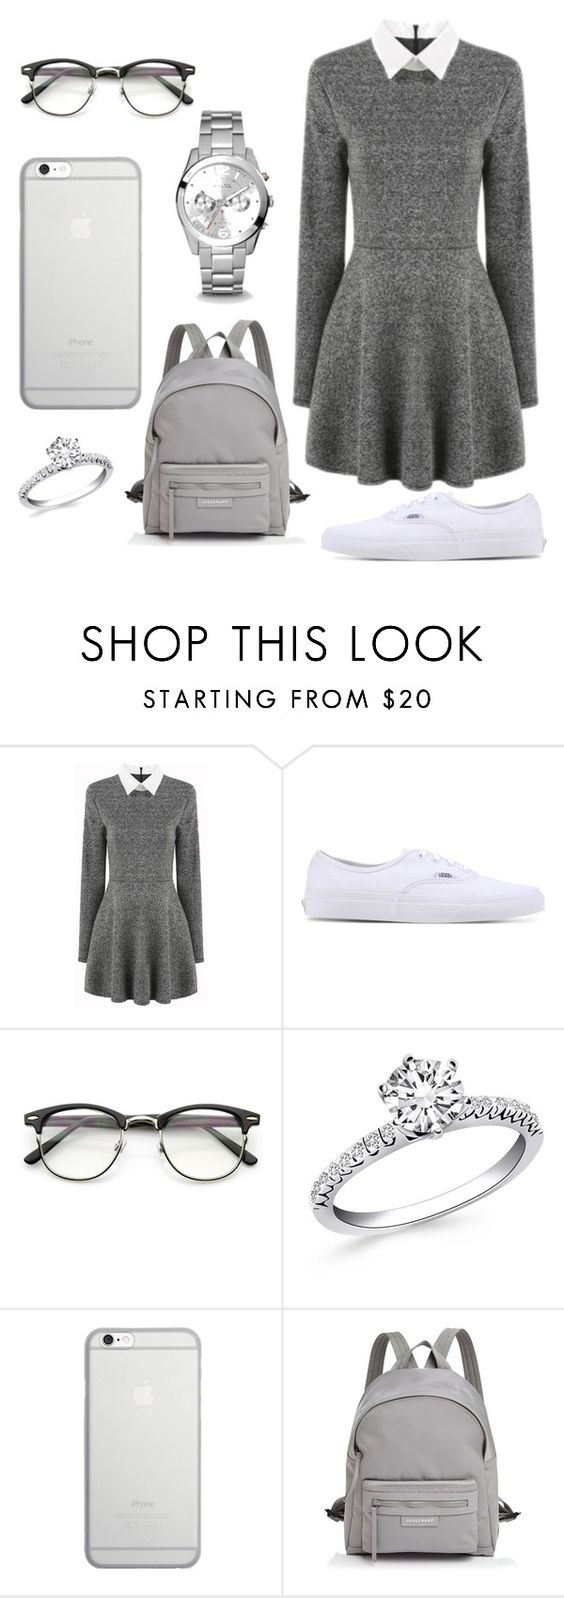 """""""Untitled #5"""" by explorer-14598665521 ❤ liked on Polyvore featuring beauty, Vans, Native Union, Longchamp and FOSSIL"""